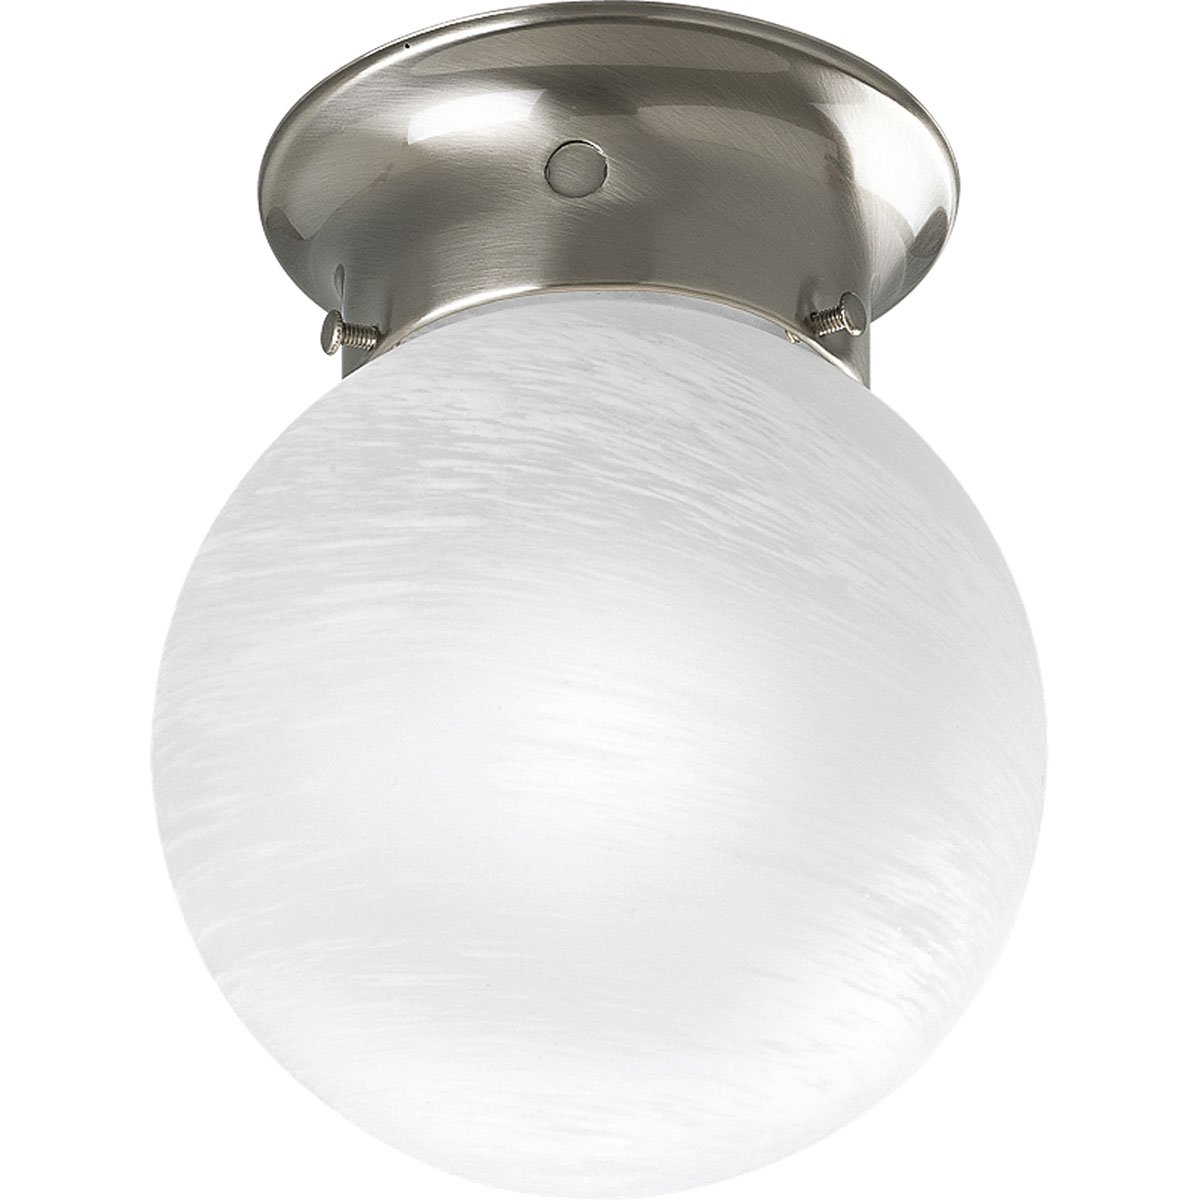 Progress Lighting P Ceiling Fixture With White Glass Globe - Basic light fixture